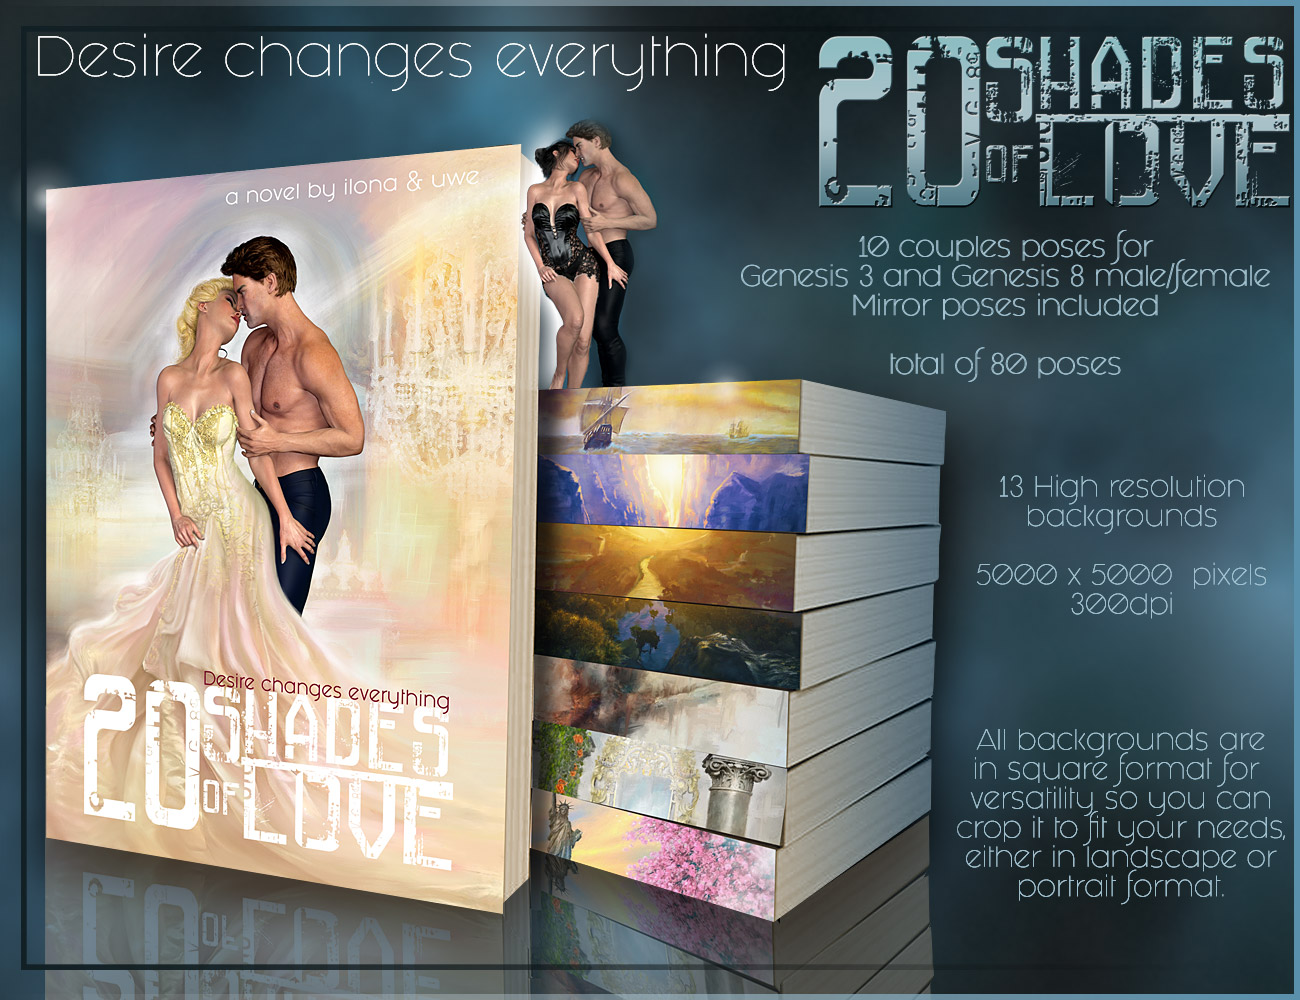 20 Shades of Love – Backgrounds and poses for G3-G8